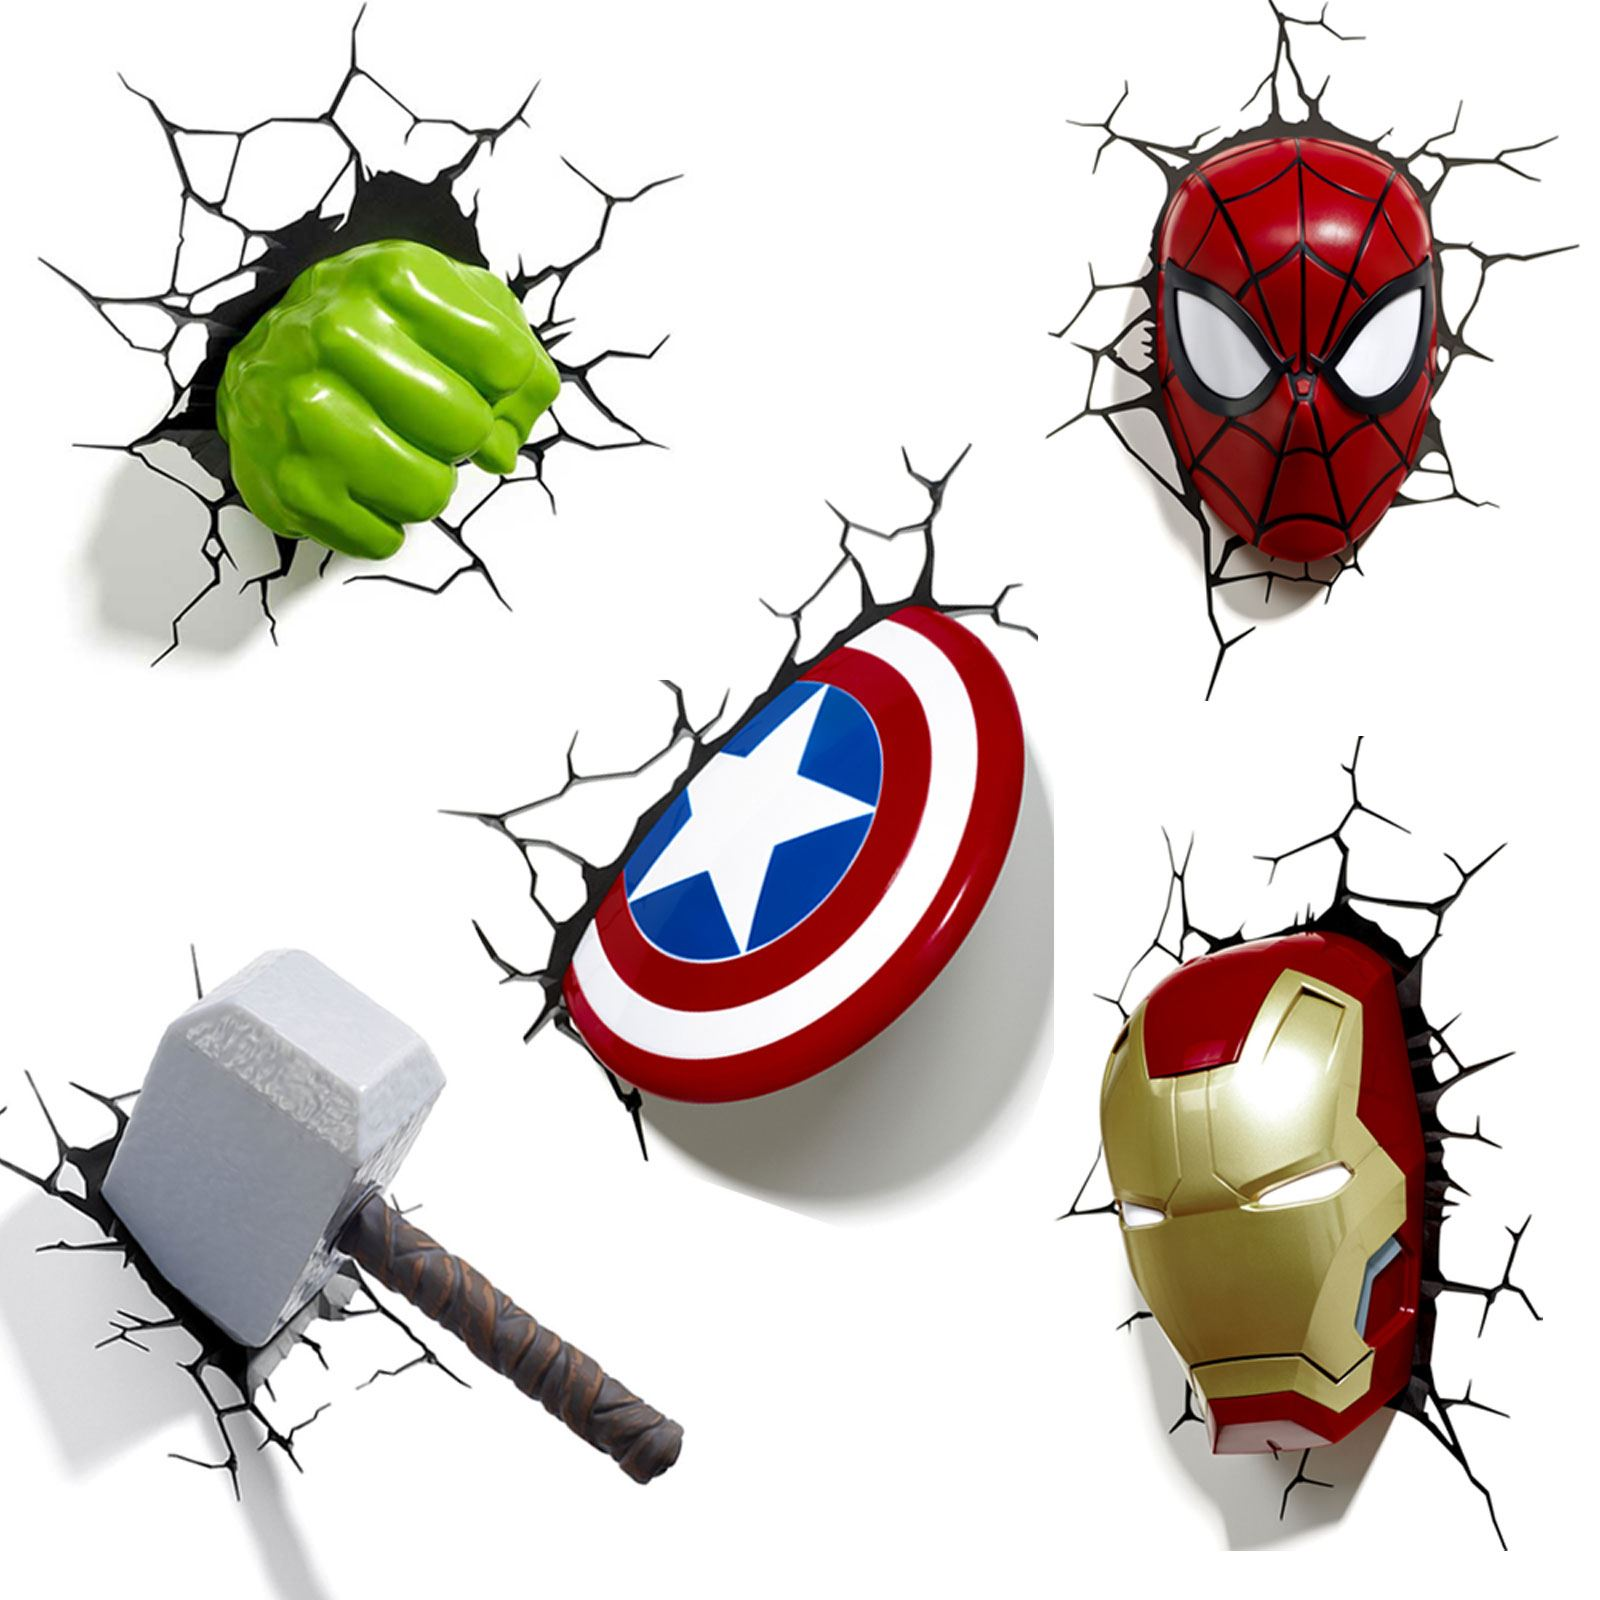 Marvel avengers 3d wall light hulk iron man captain america marvel avengers 3d wall light hulk iron man captain america thor spiderman aloadofball Images